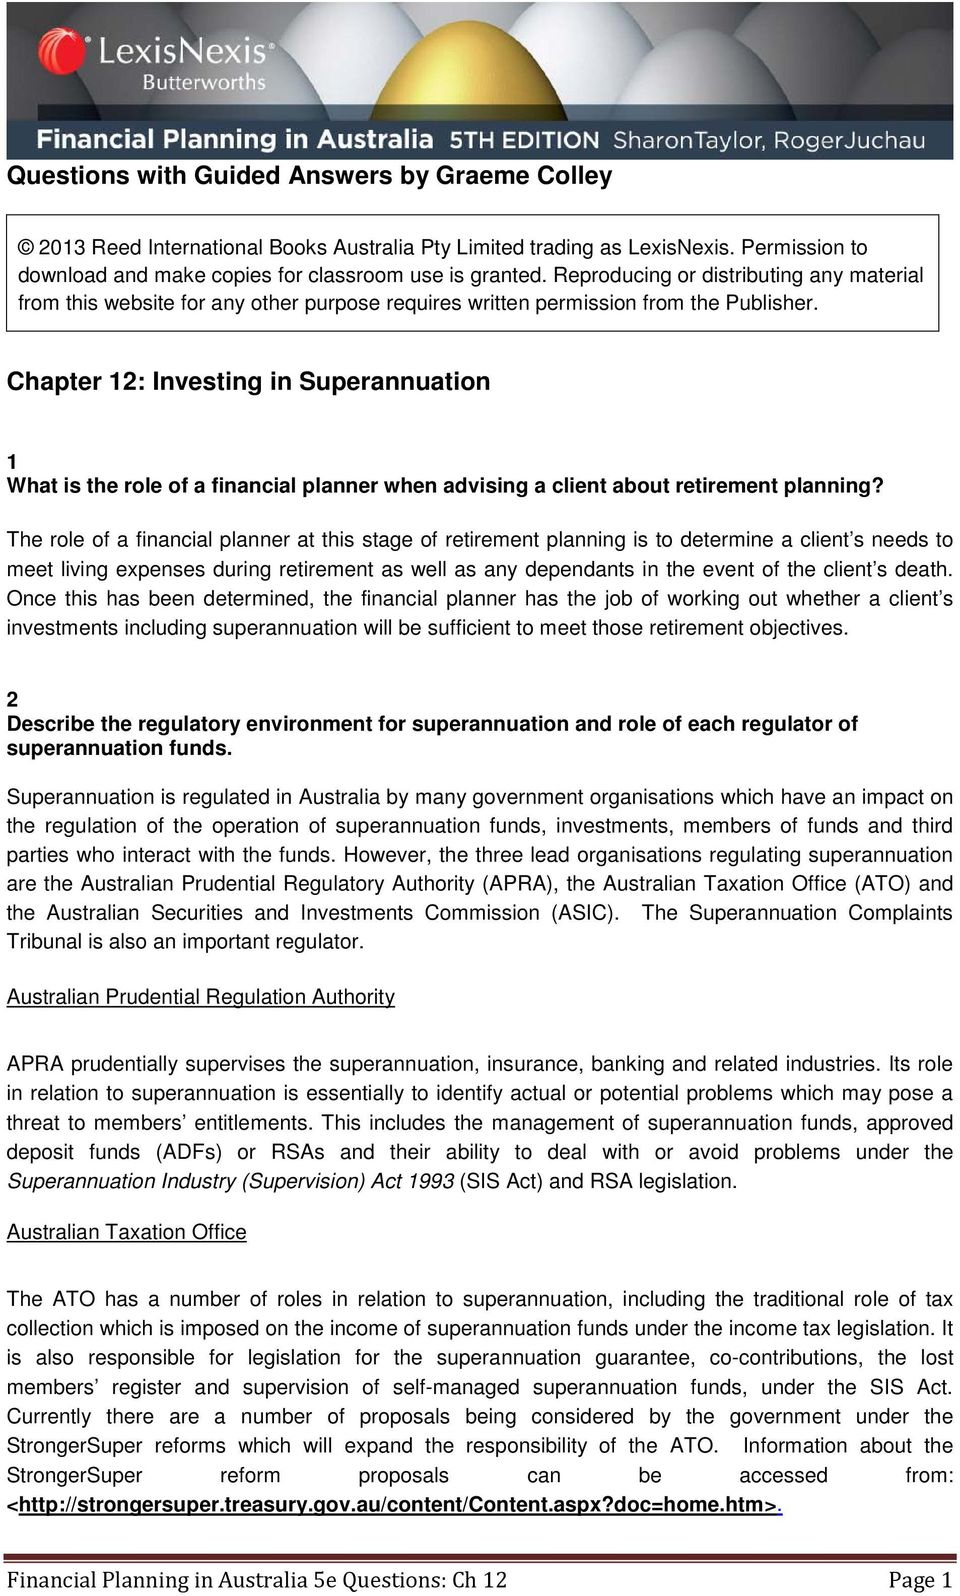 Chapter 12: Investing in Superannuation 1 What is the role of a financial planner when advising a client about retirement planning?